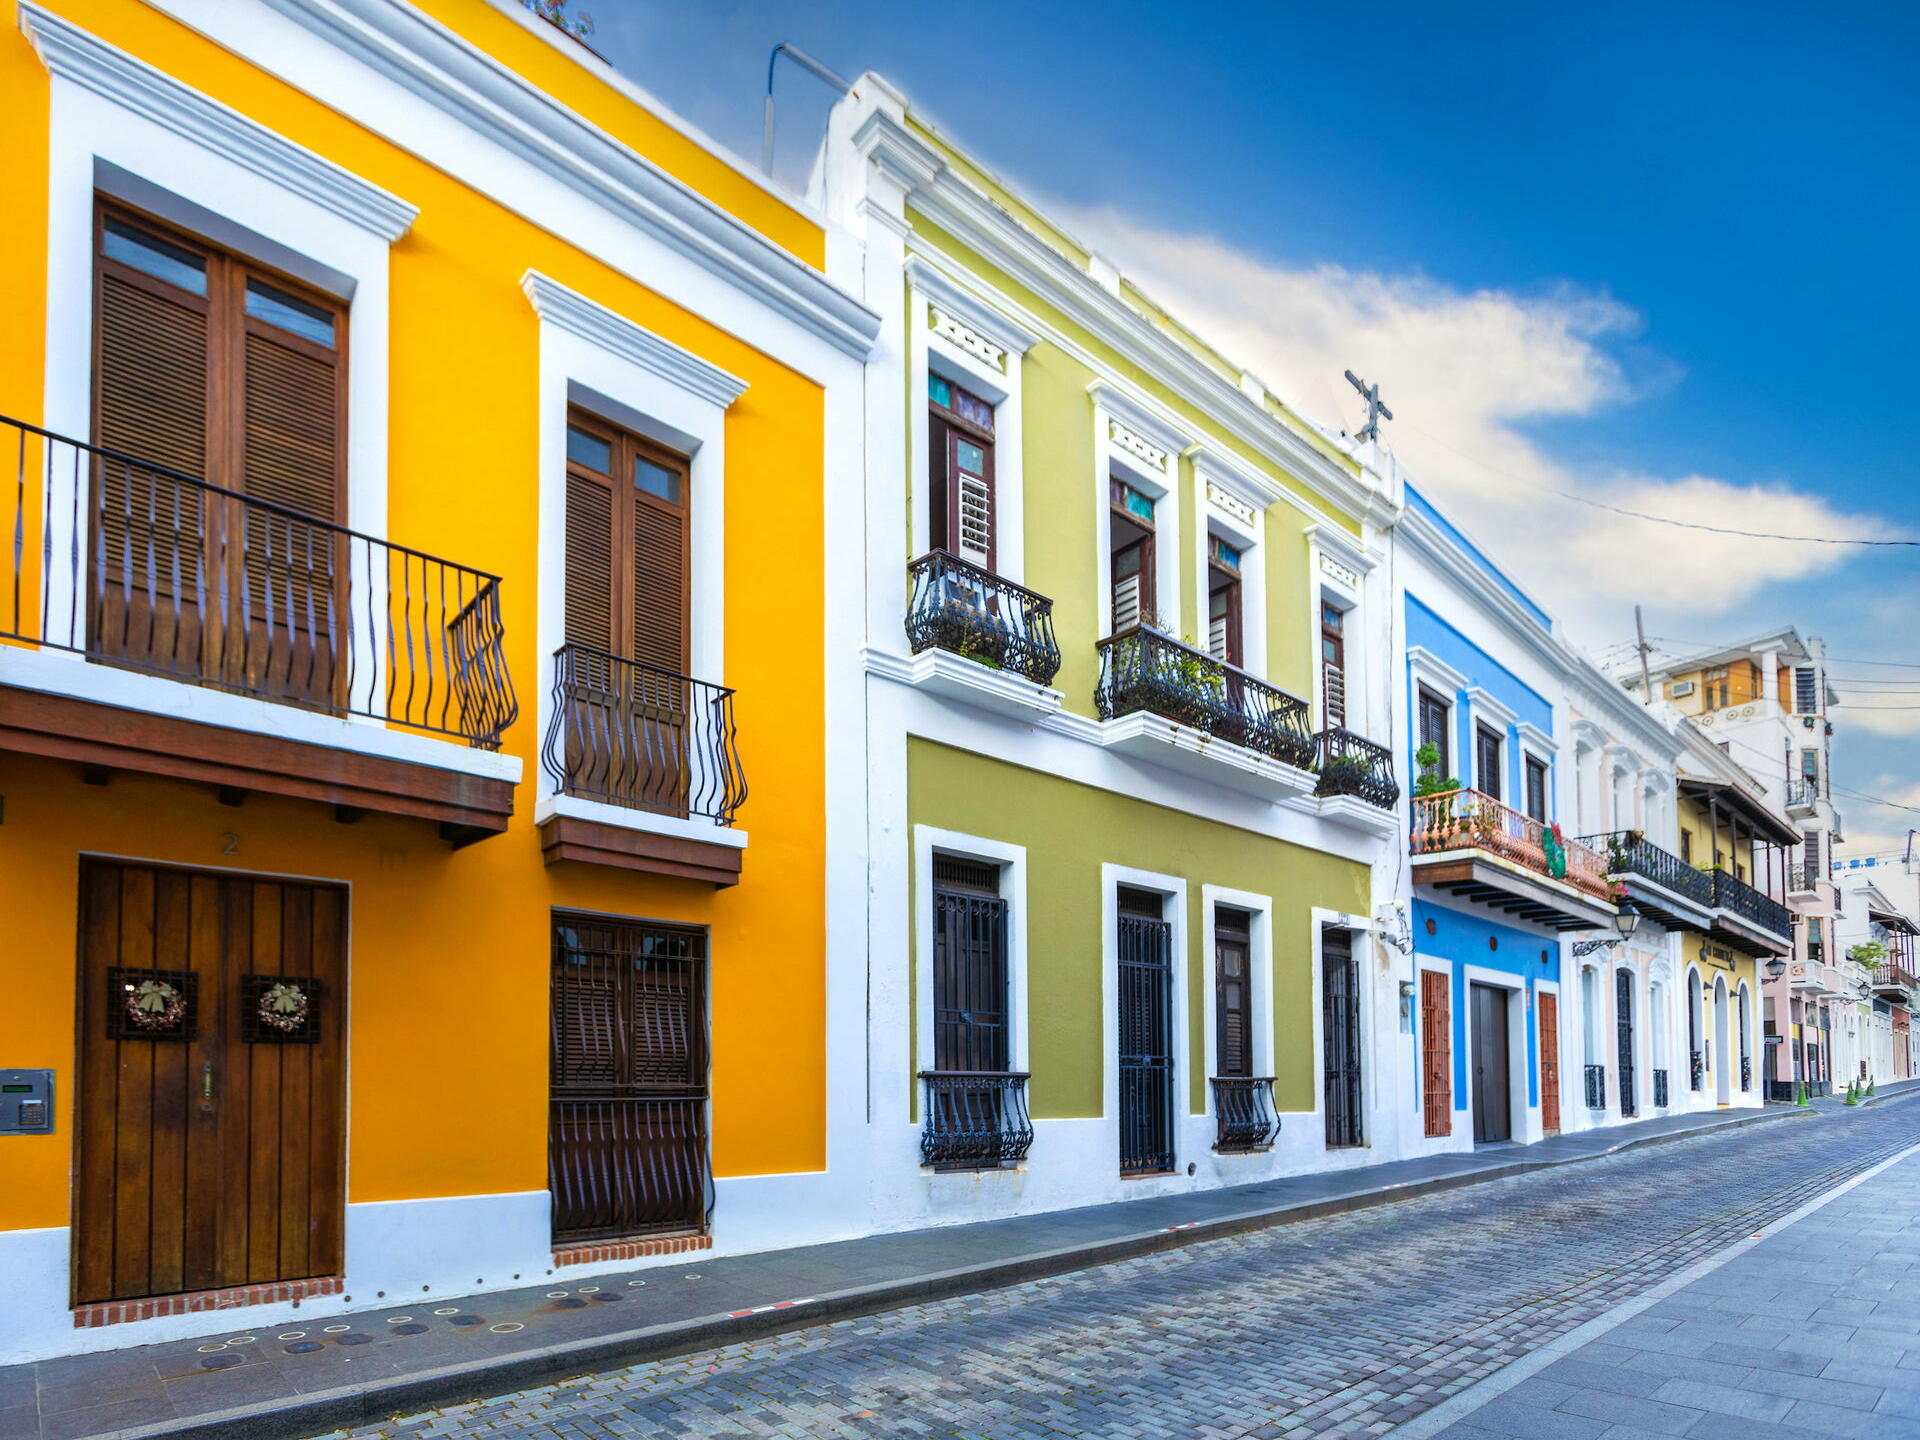 street of Old San Juan with colorful buildings